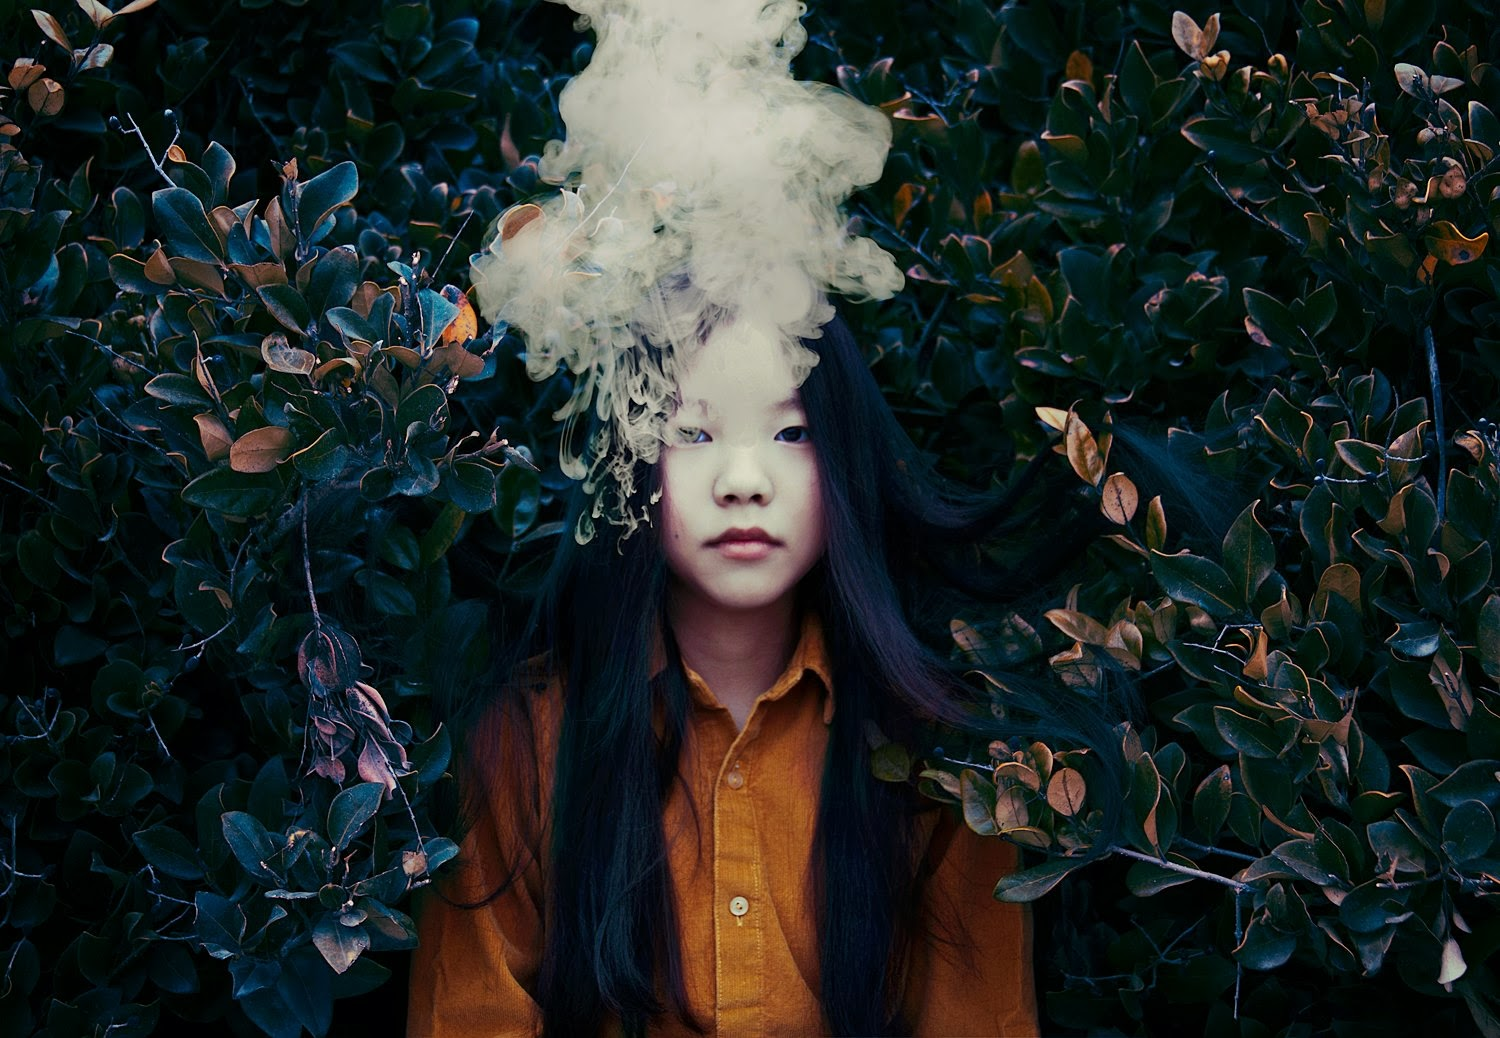 ©May Xiong. Retrato Conceptual. Fotografía | Photography